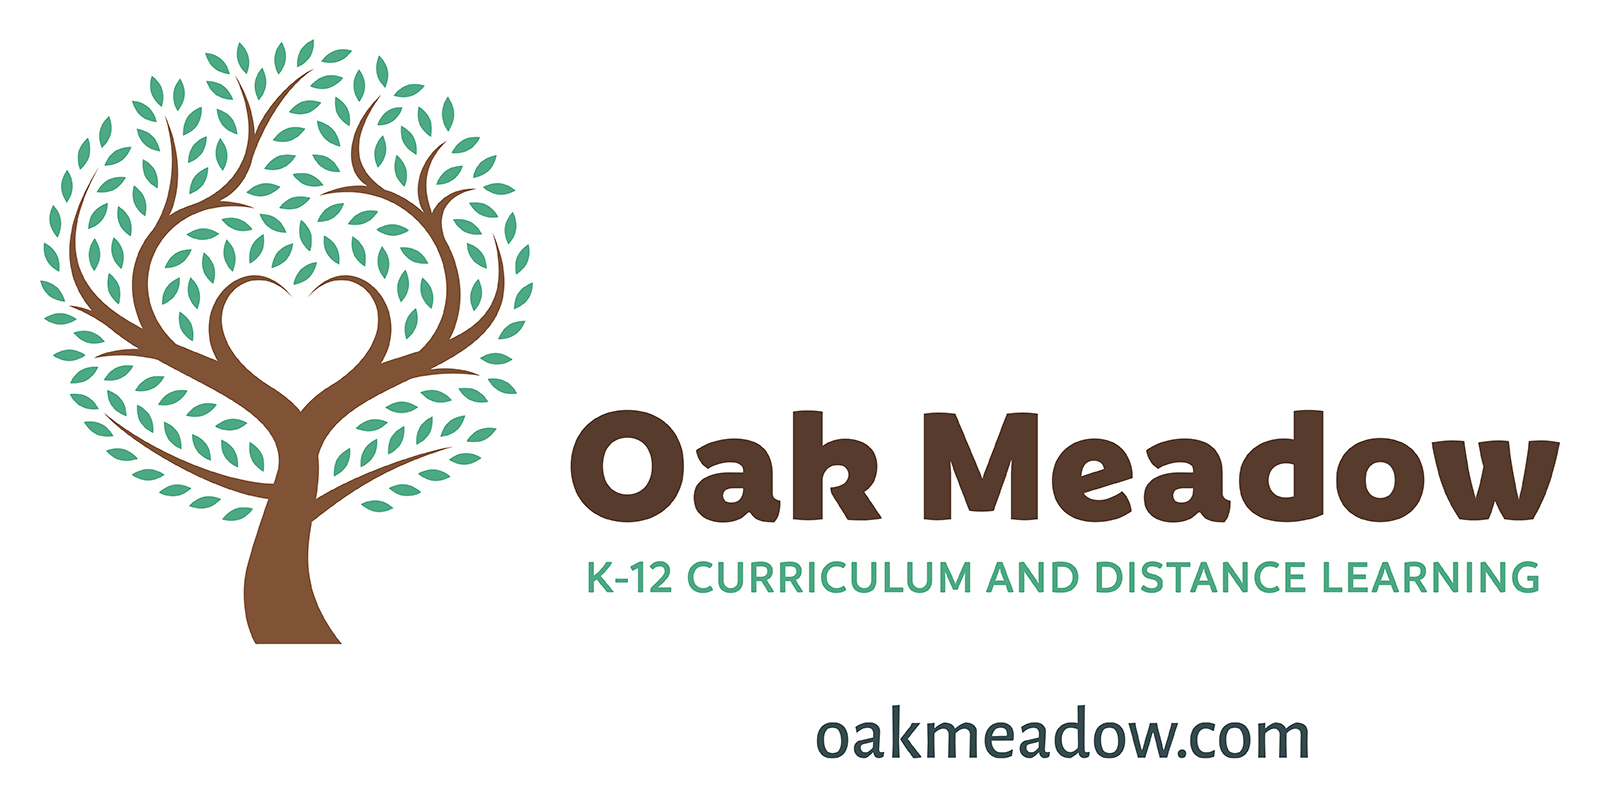 Logo for Oak Meadow, K-12 curriculum and distance learning. oakmaedow.com